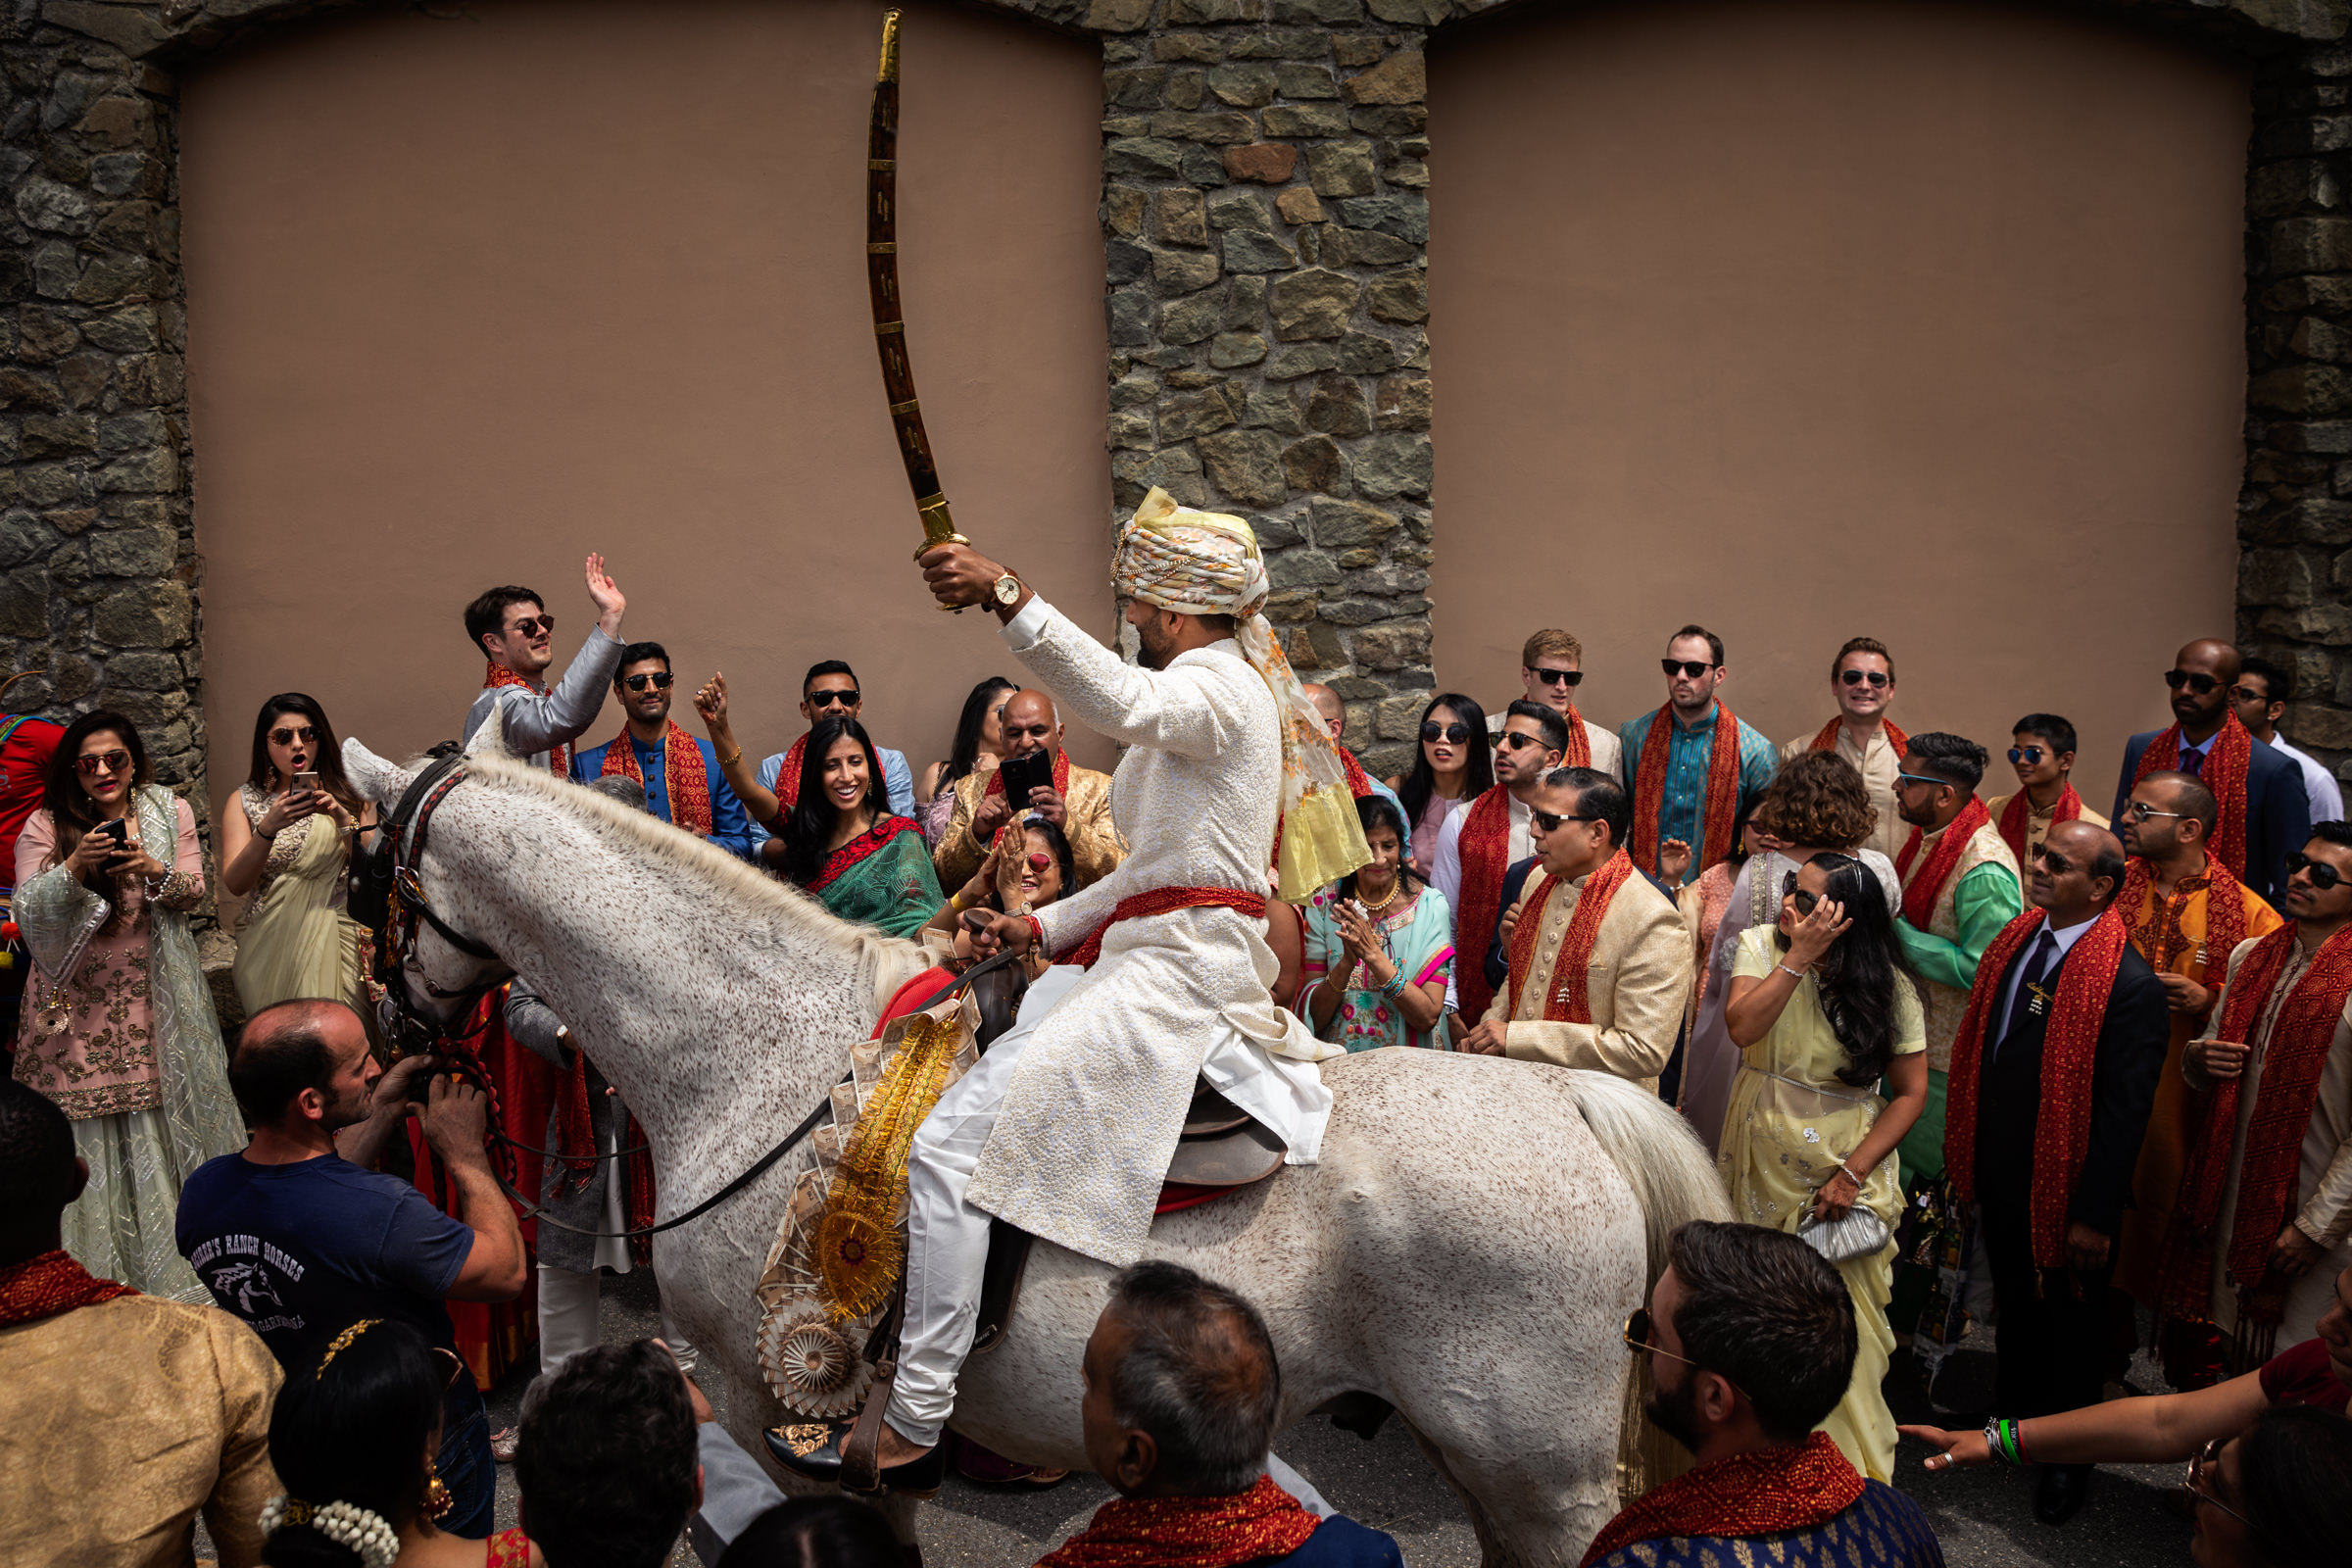 Indian groom on horseback against crowd of guests - photo by D2 Photography